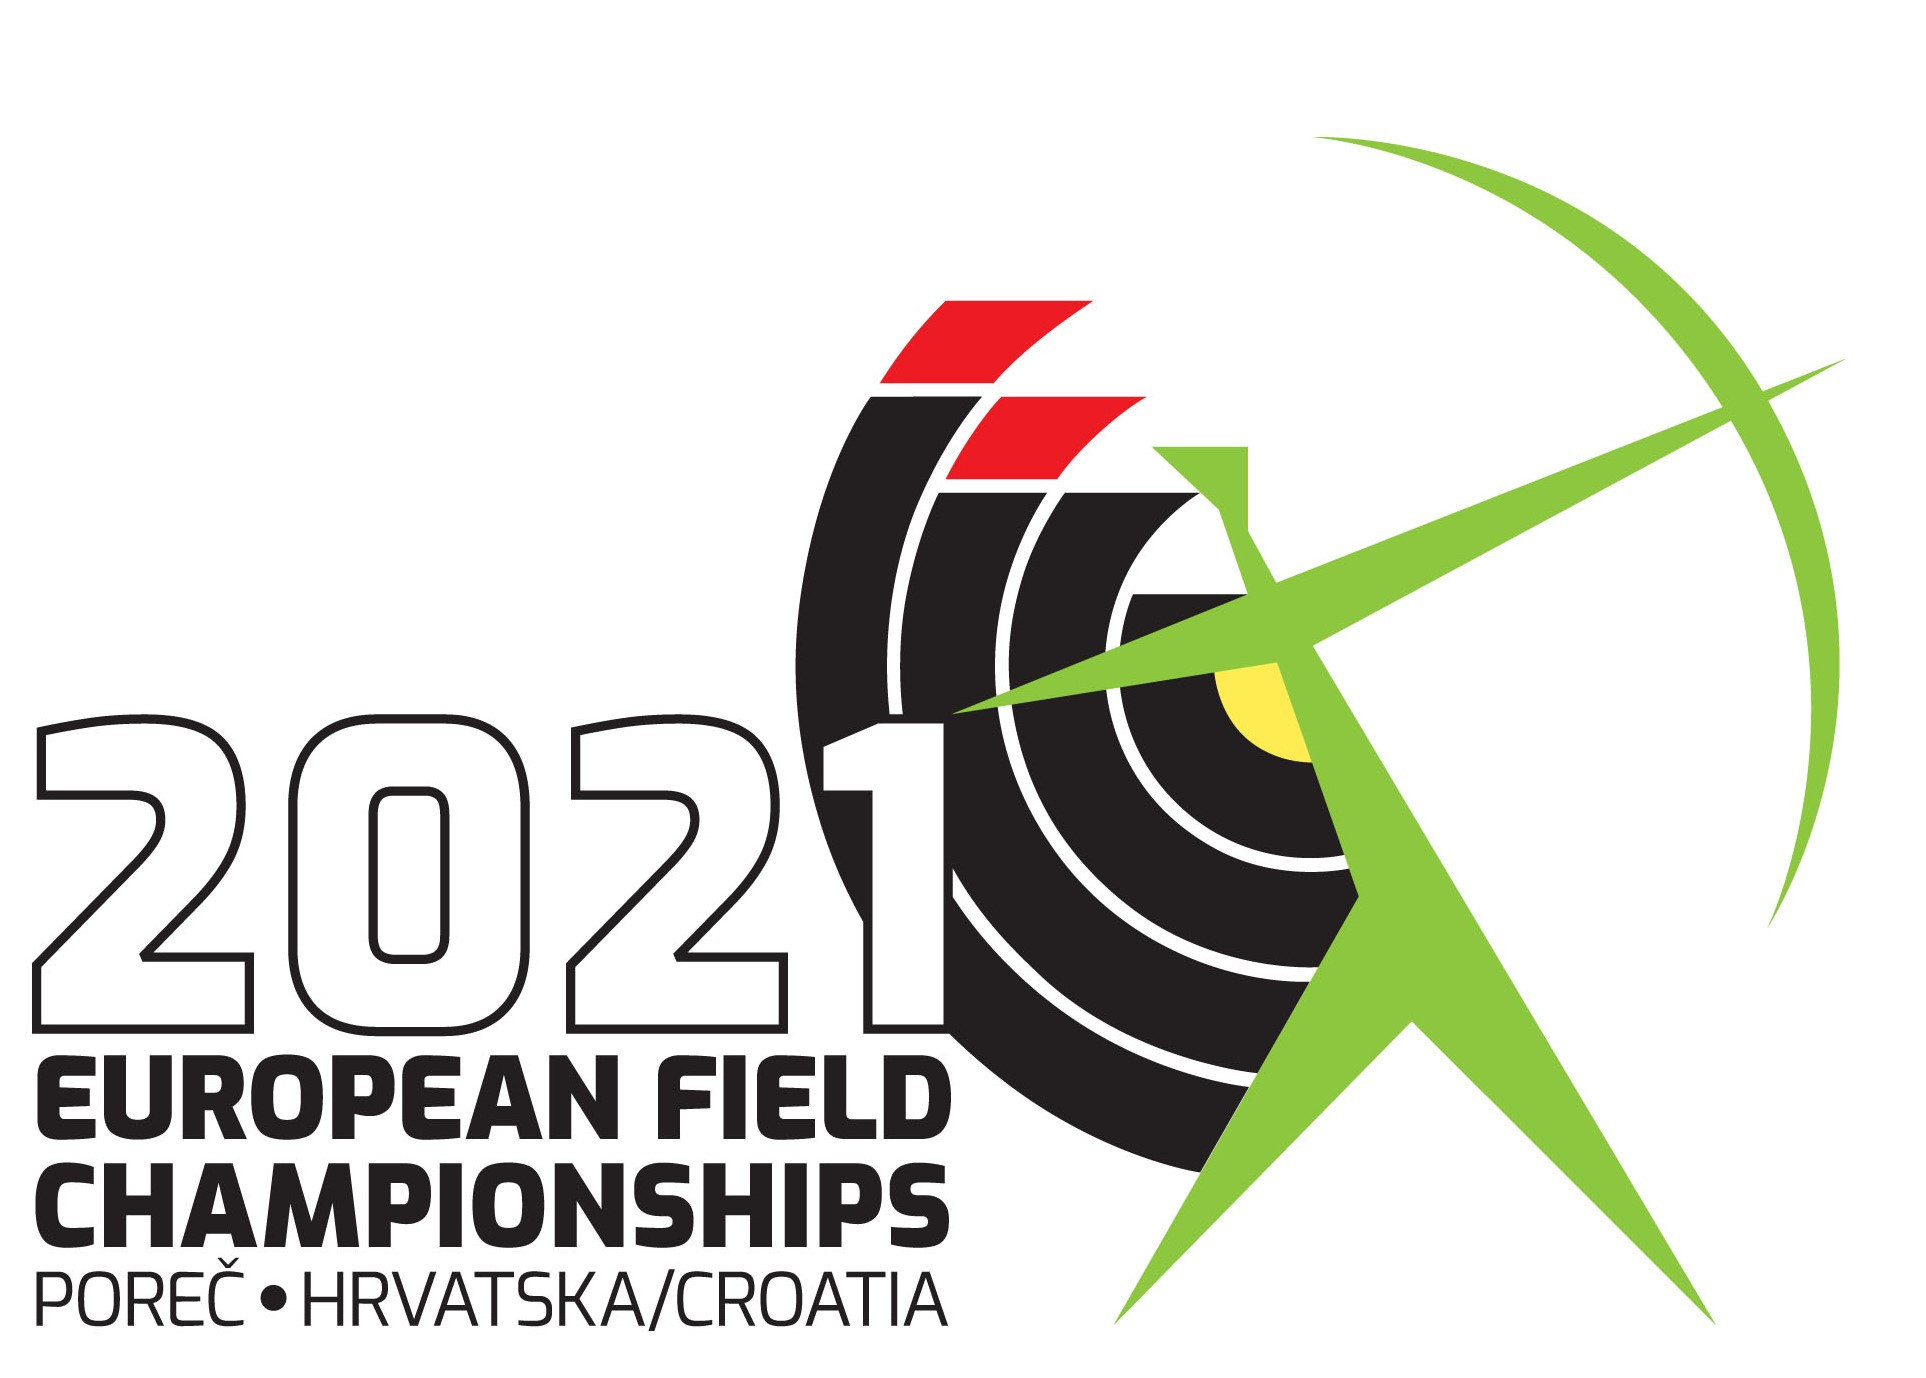 Italy claim two team titles at European Field Archery Championships